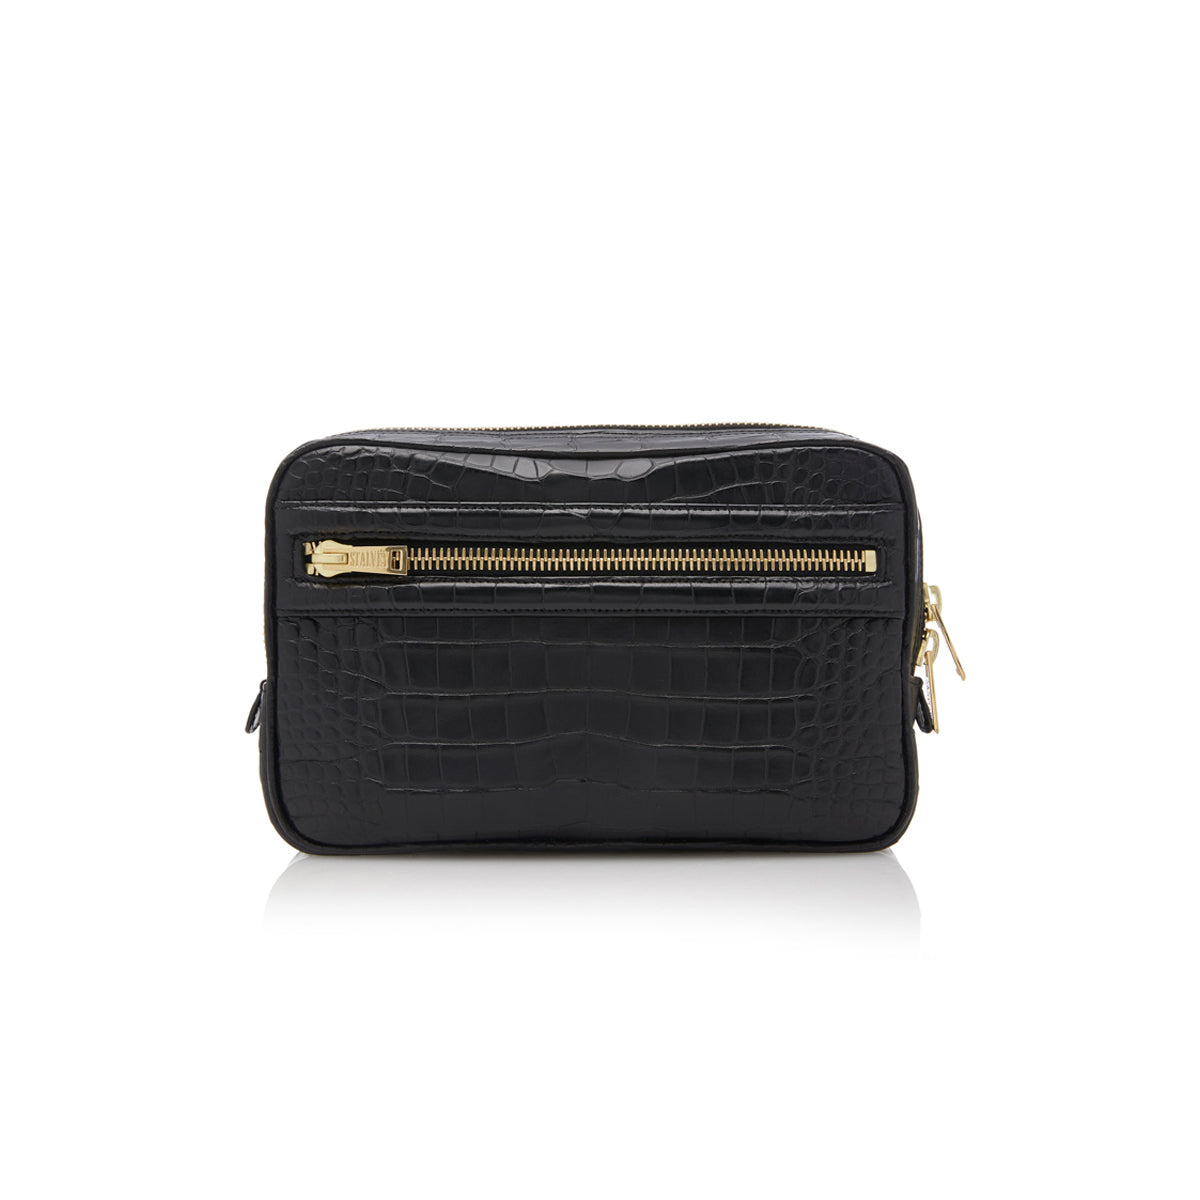 Small Toiletry Case - Black Alligator